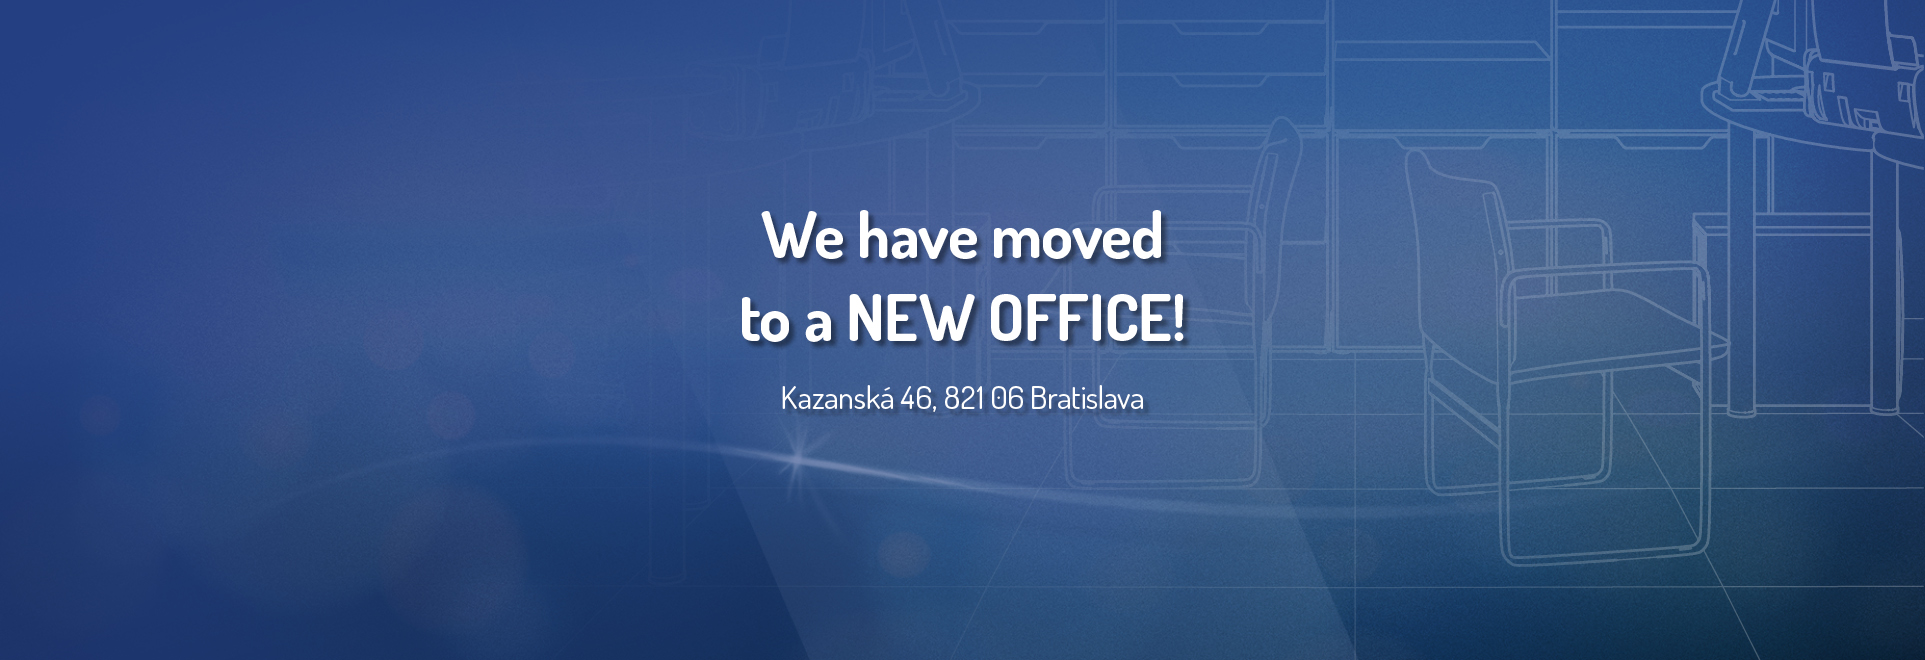 fs-portfolio-header-new-office